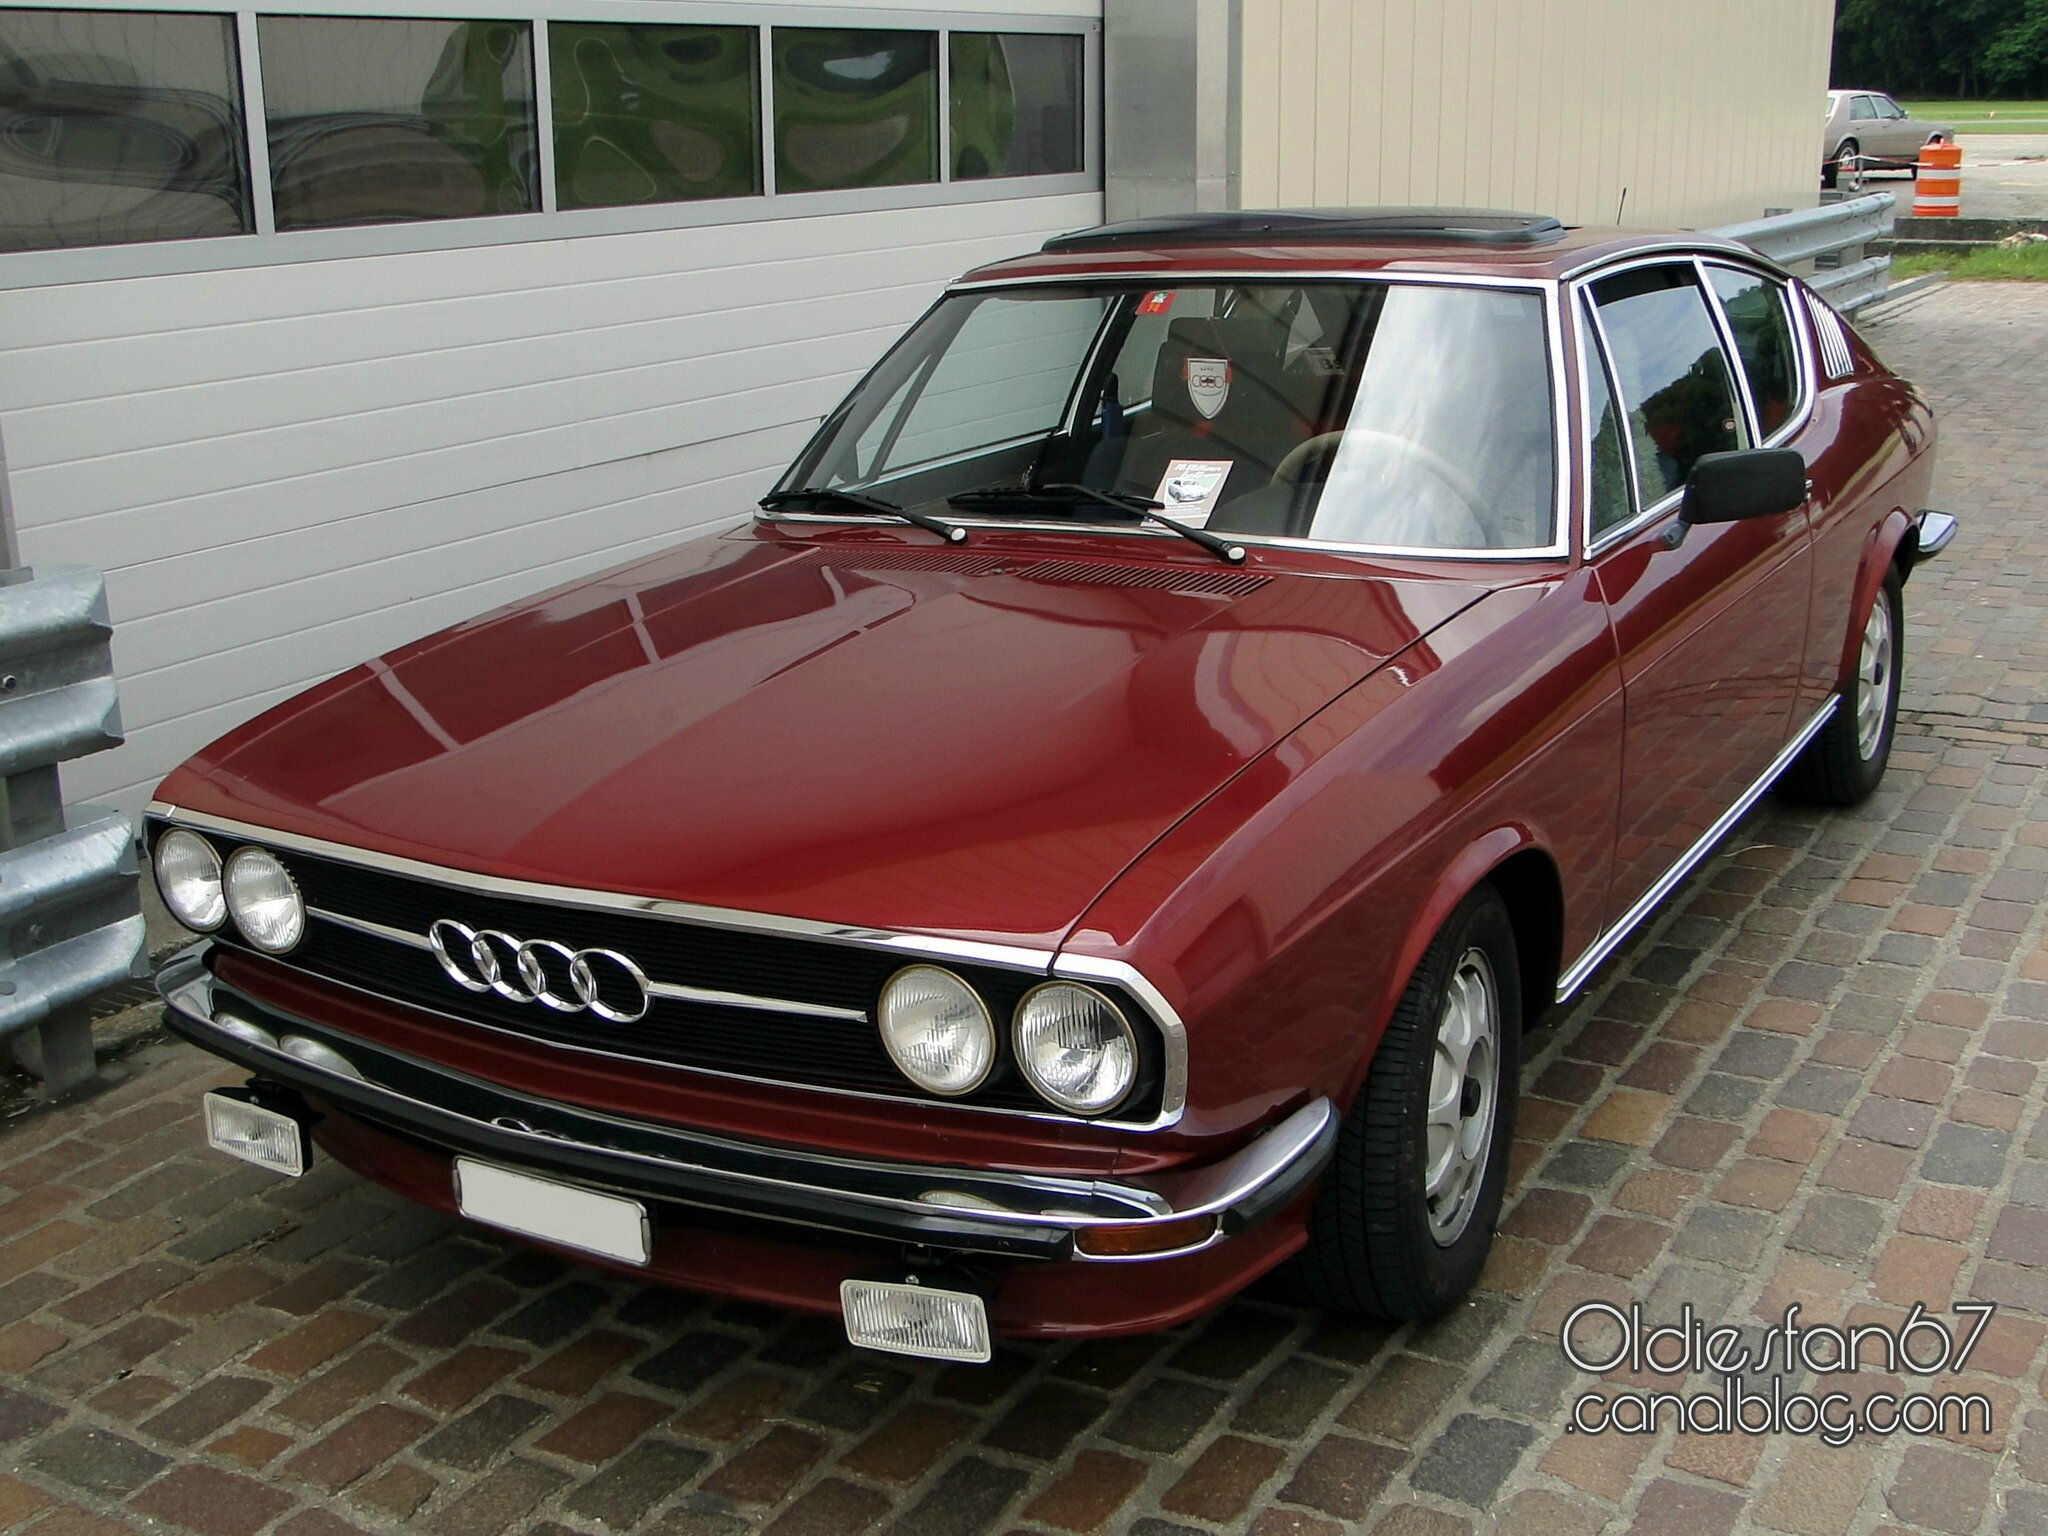 audi 100 coupe s s rie 2 automatic 1975 1976 oldiesfan67 mon blog auto. Black Bedroom Furniture Sets. Home Design Ideas